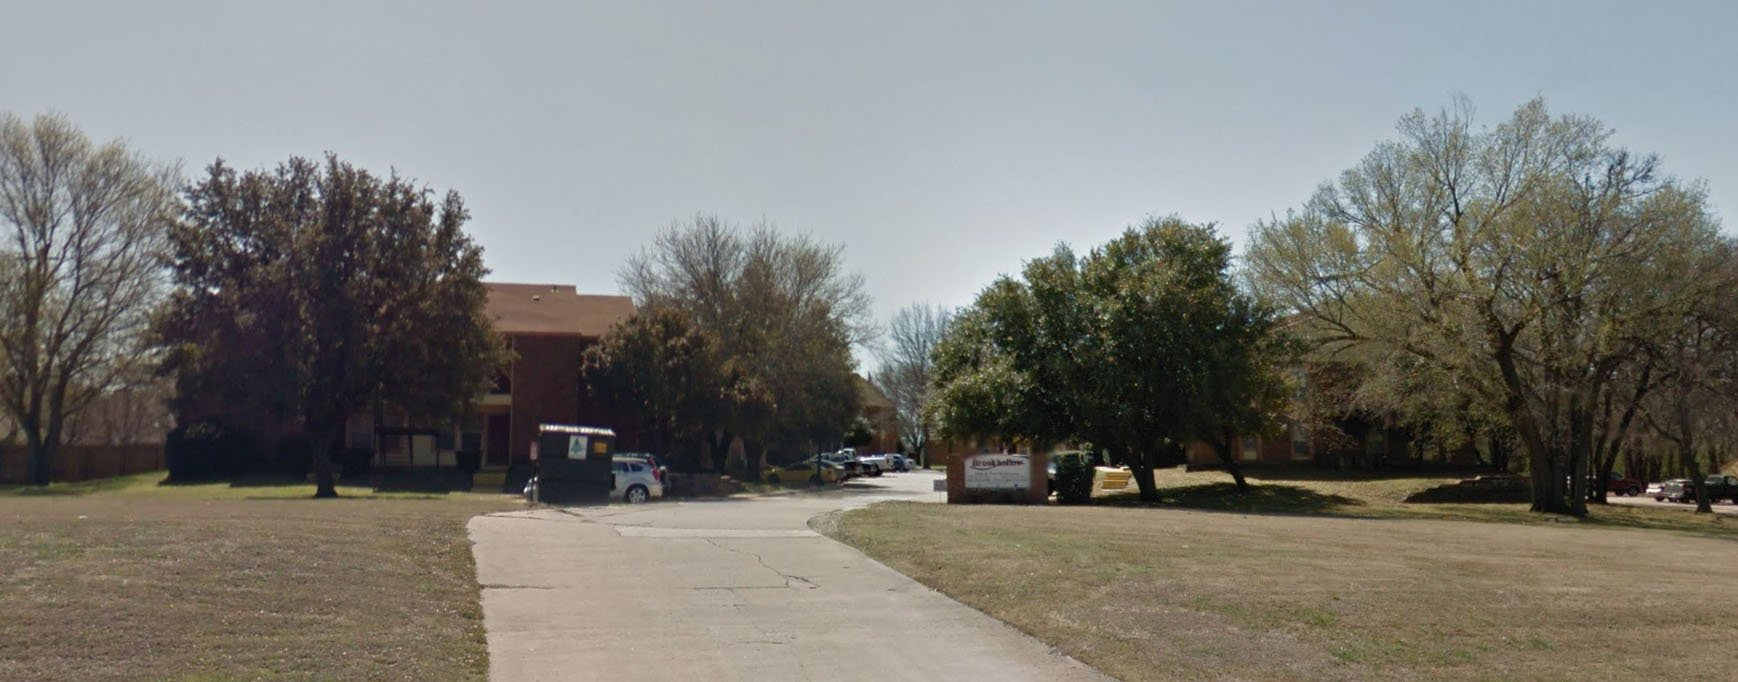 Brookhollow Apartments 2000 Hwy 82 West Whitesboro Tx